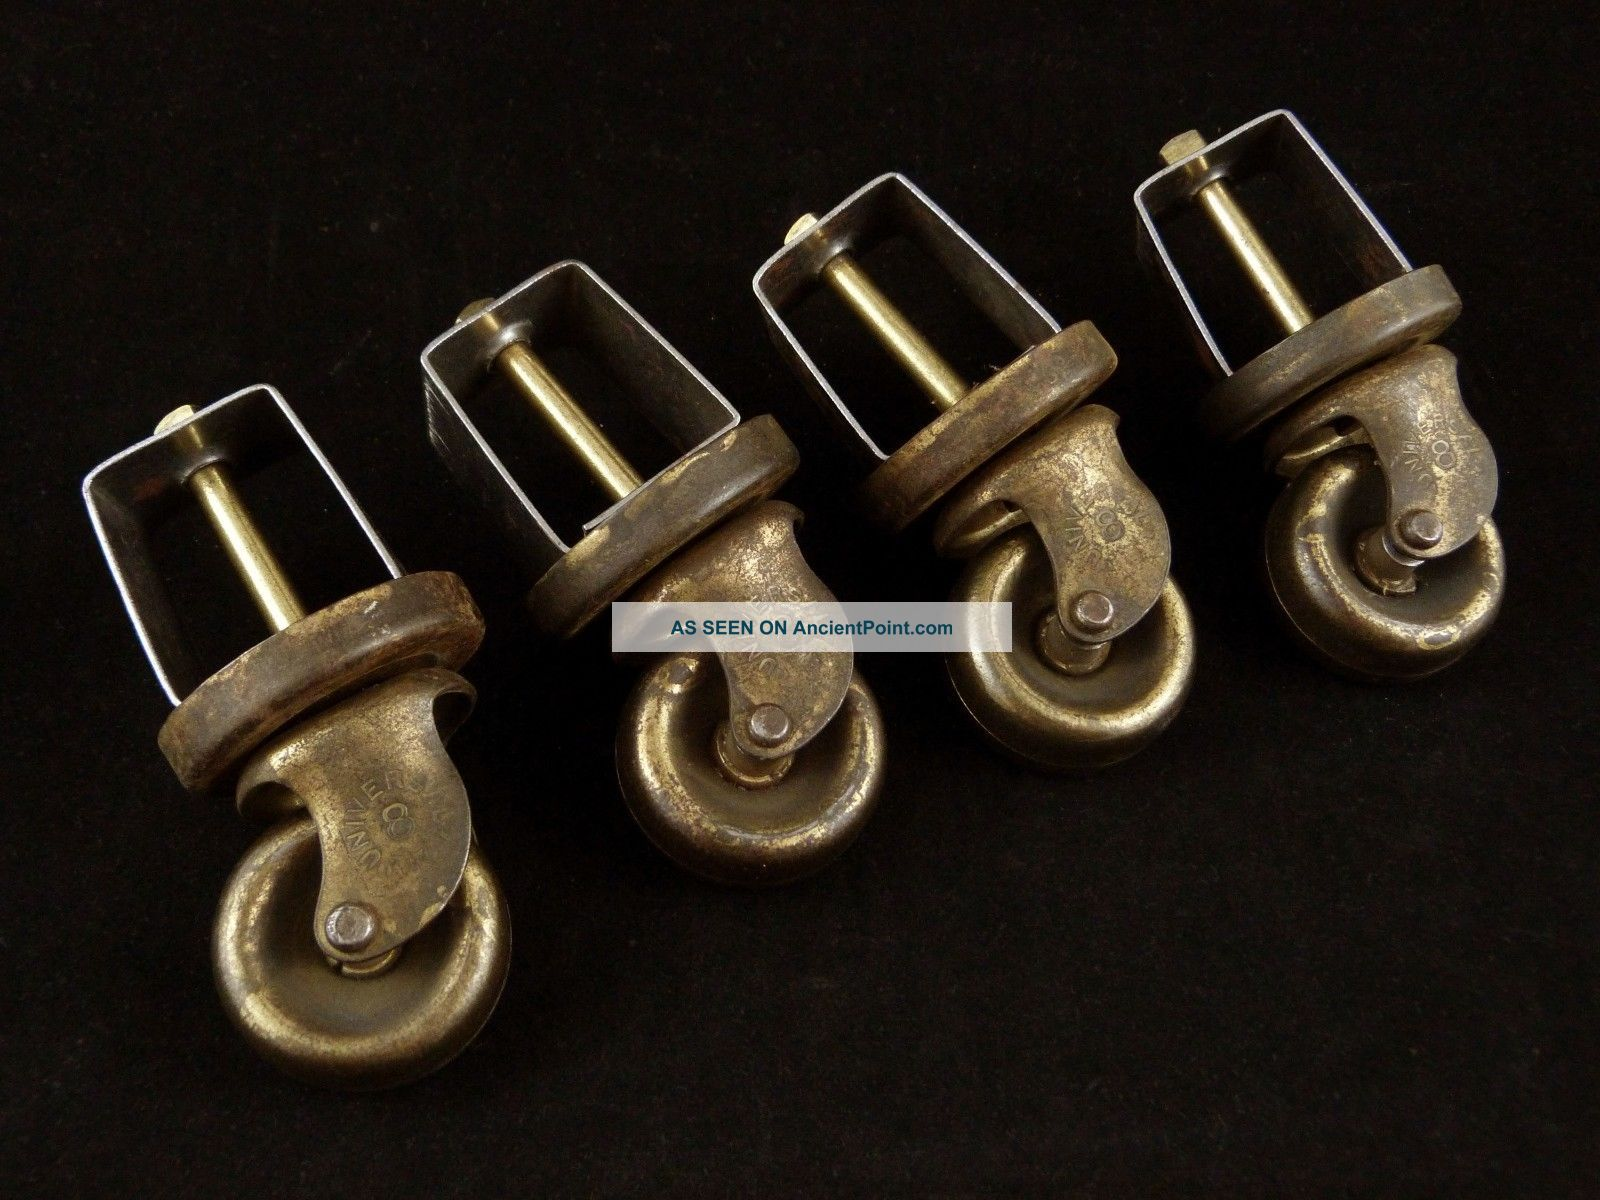 4 Vintage Heavy Duty Industrial Brass Casters Swivel Wheels ' Universal 8 ' Bed Other Antique Hardware photo